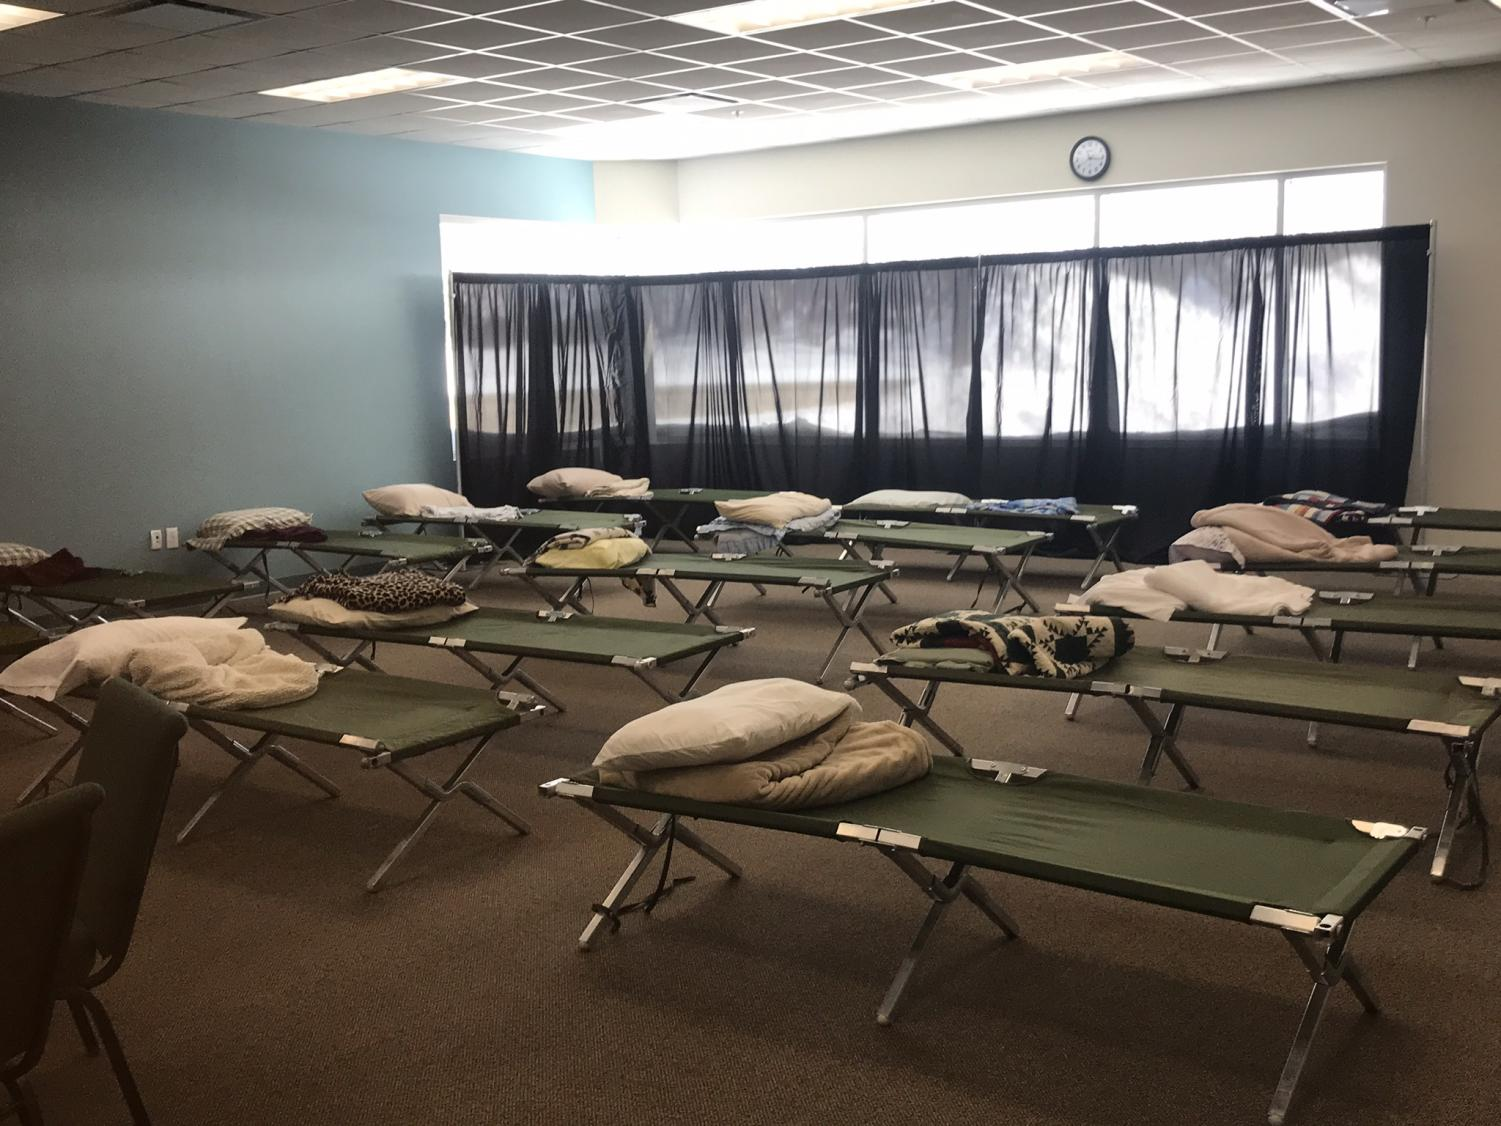 A room at Coram Deo Bible Church in Davenport was completely emptied and filled with cots for the homeless in anticipation of the incoming polar vortex on Jan 29.